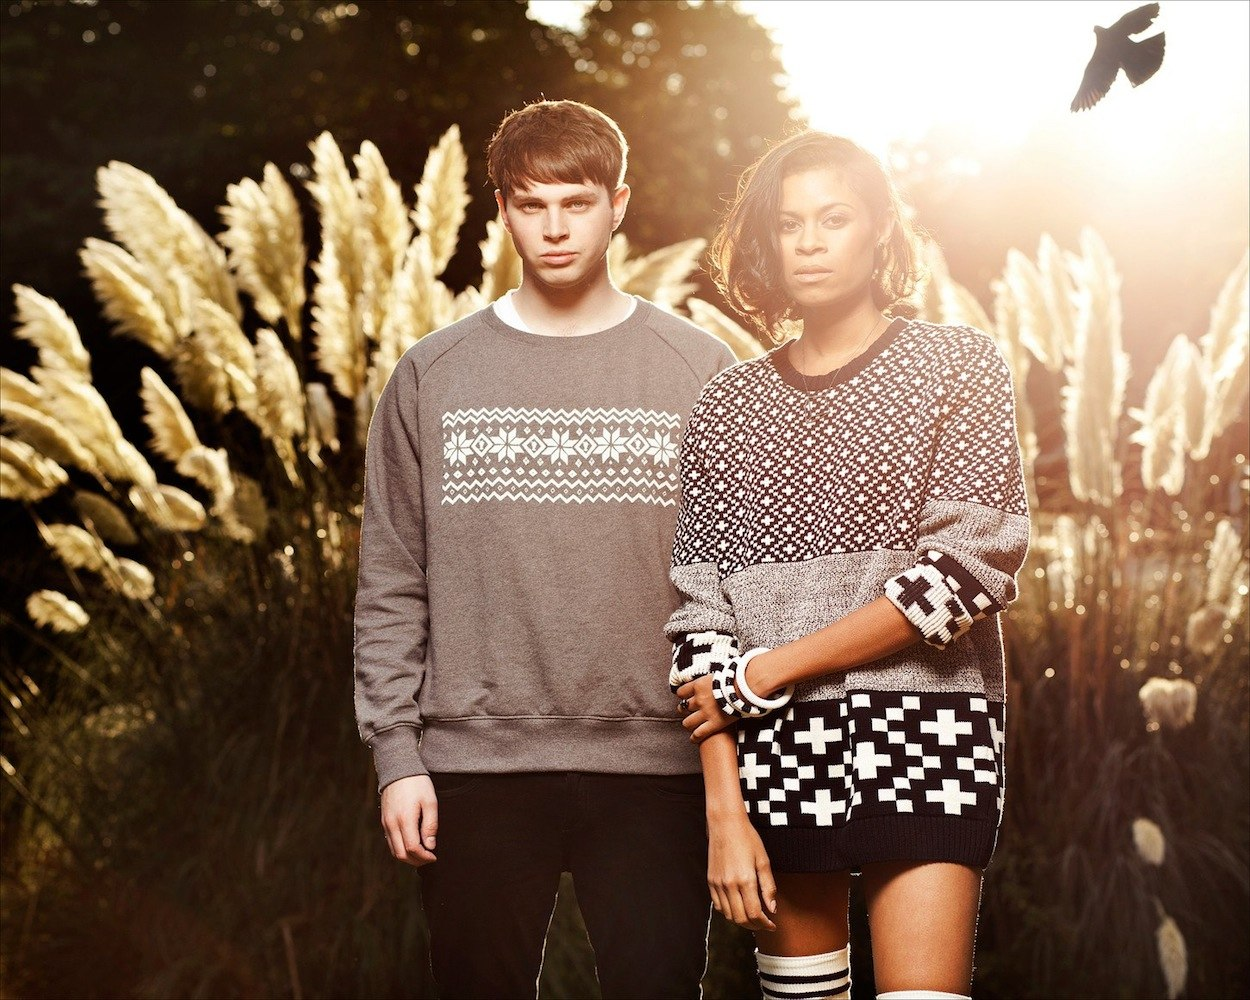 AlunaGeorge – Thinkin Bout You (Frank Ocean Cover)